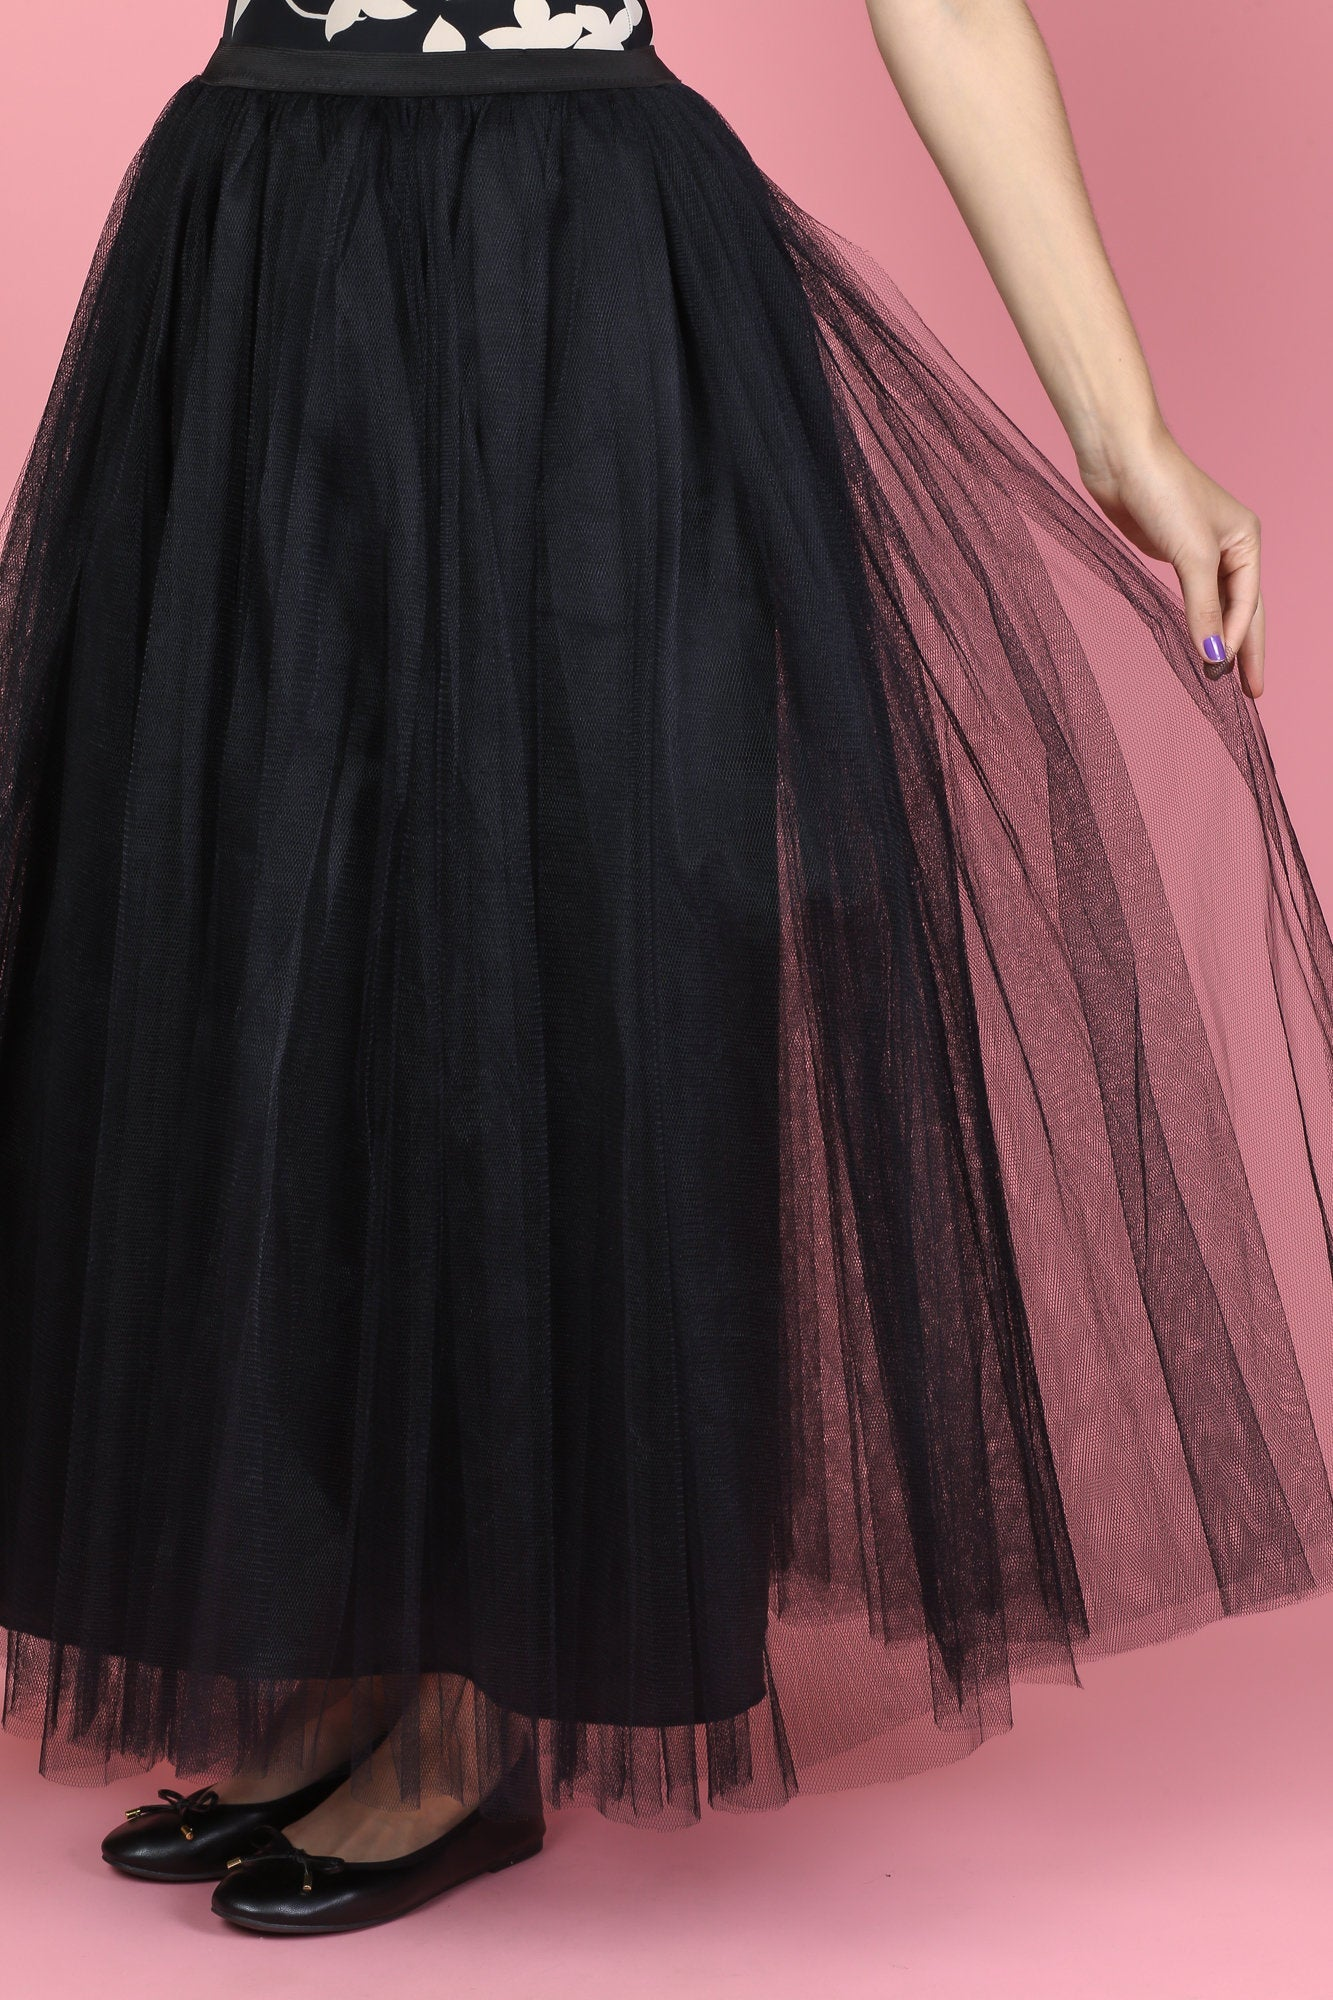 Vintage Black Tulle Maxi Skirt - Medium